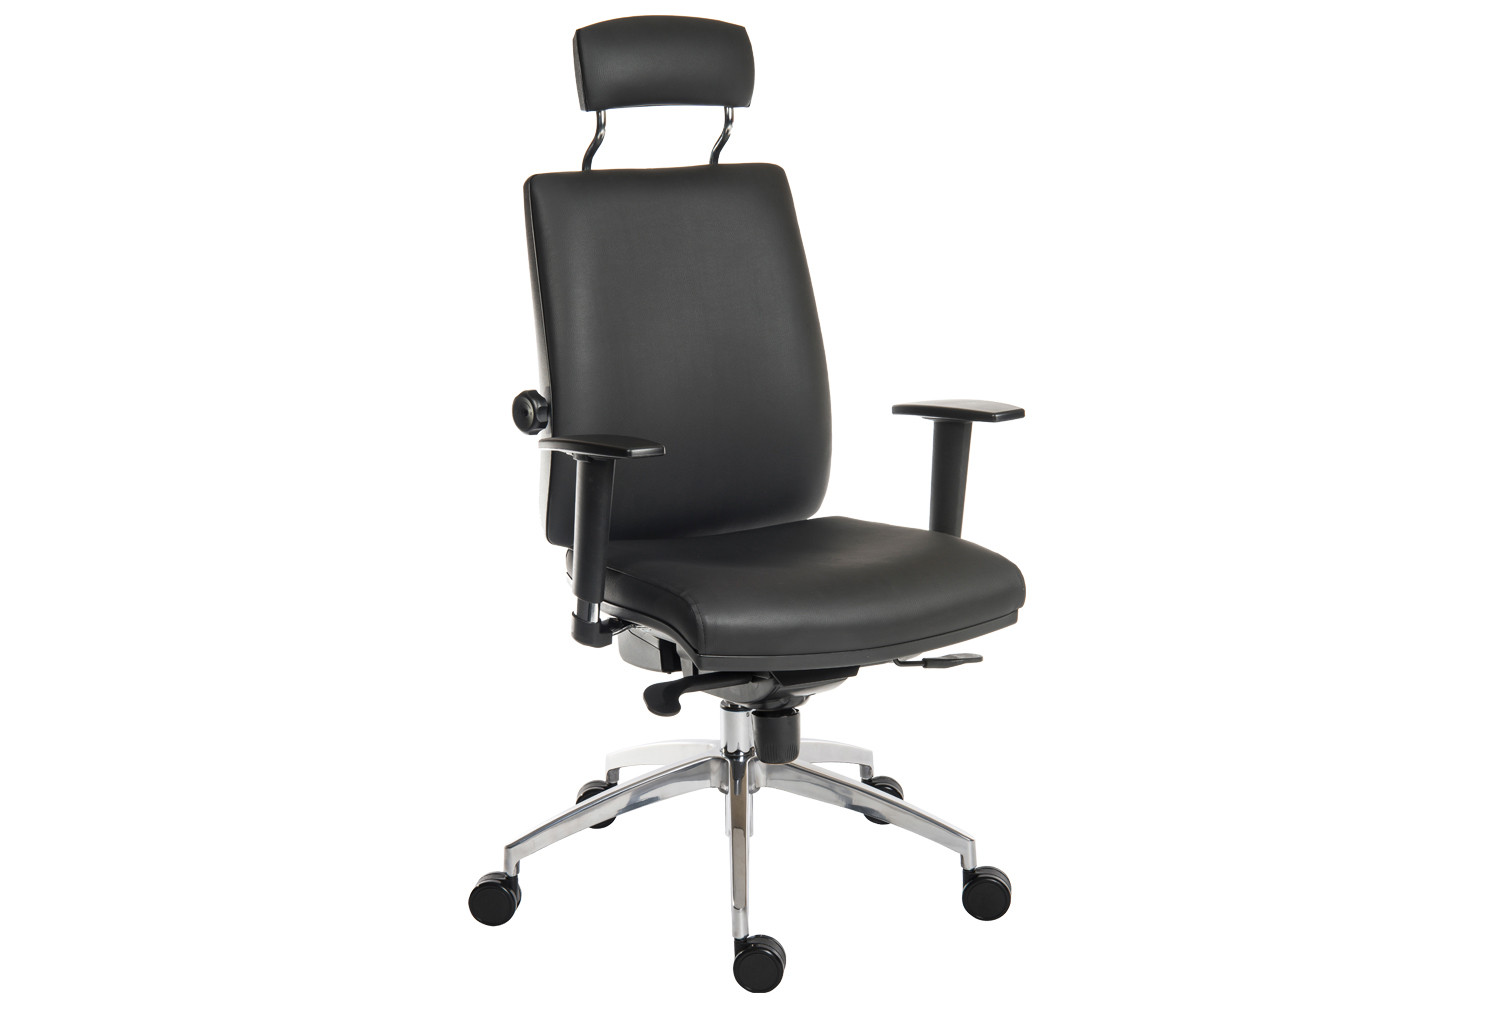 Baron deluxe 24hr ergonomic armchair with headrest (PU)